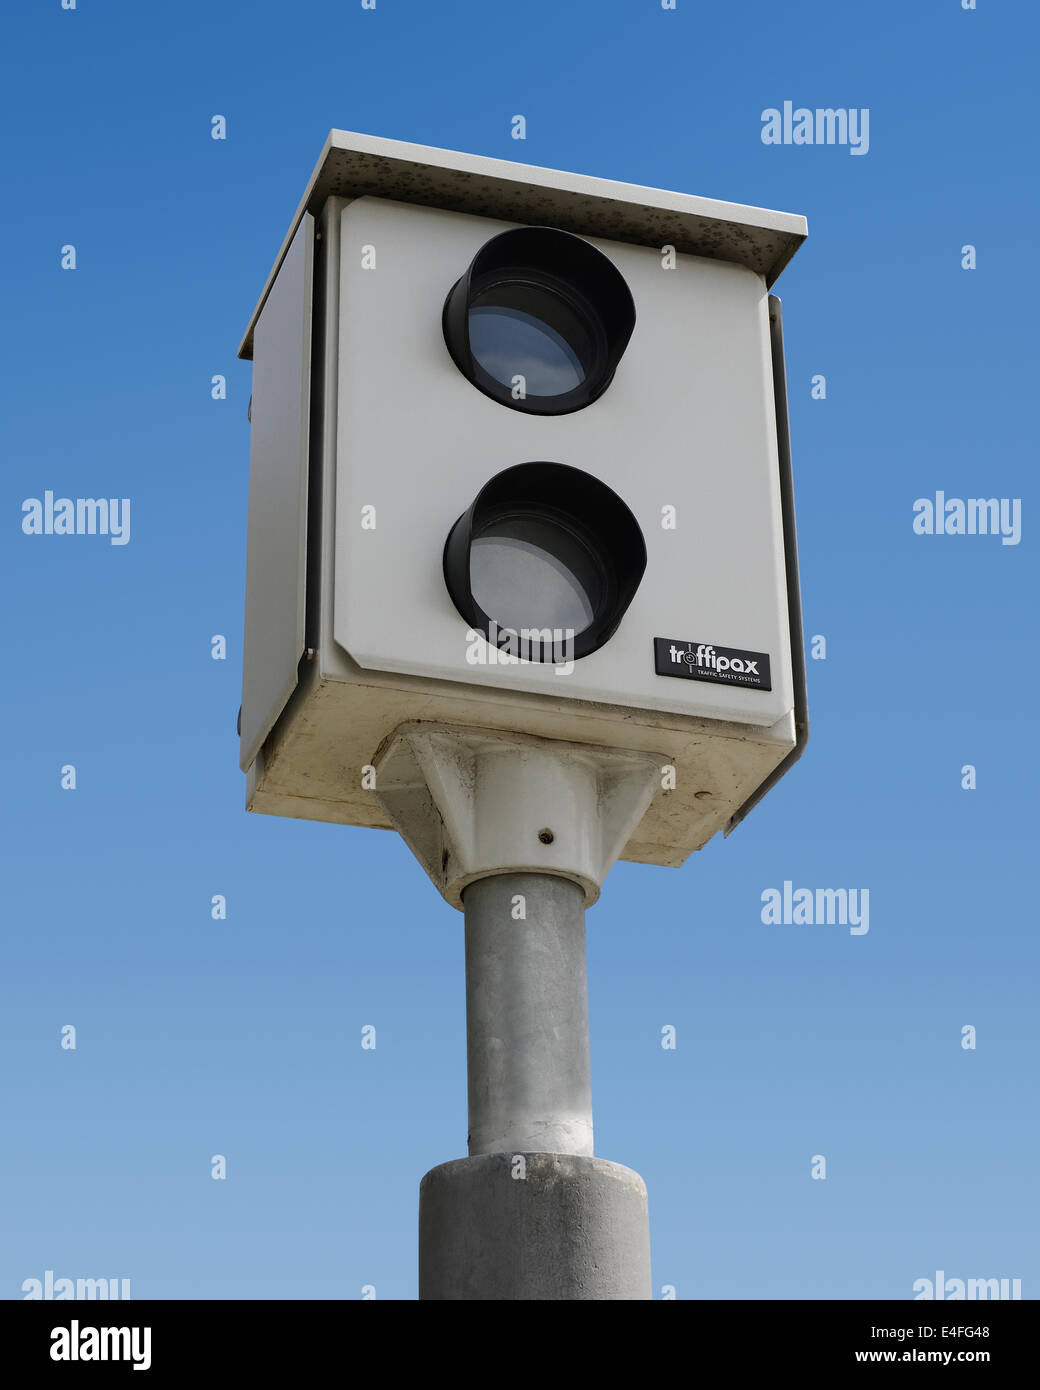 Speed Camera. Traffipax Speed Control Camera Stock Photo ...